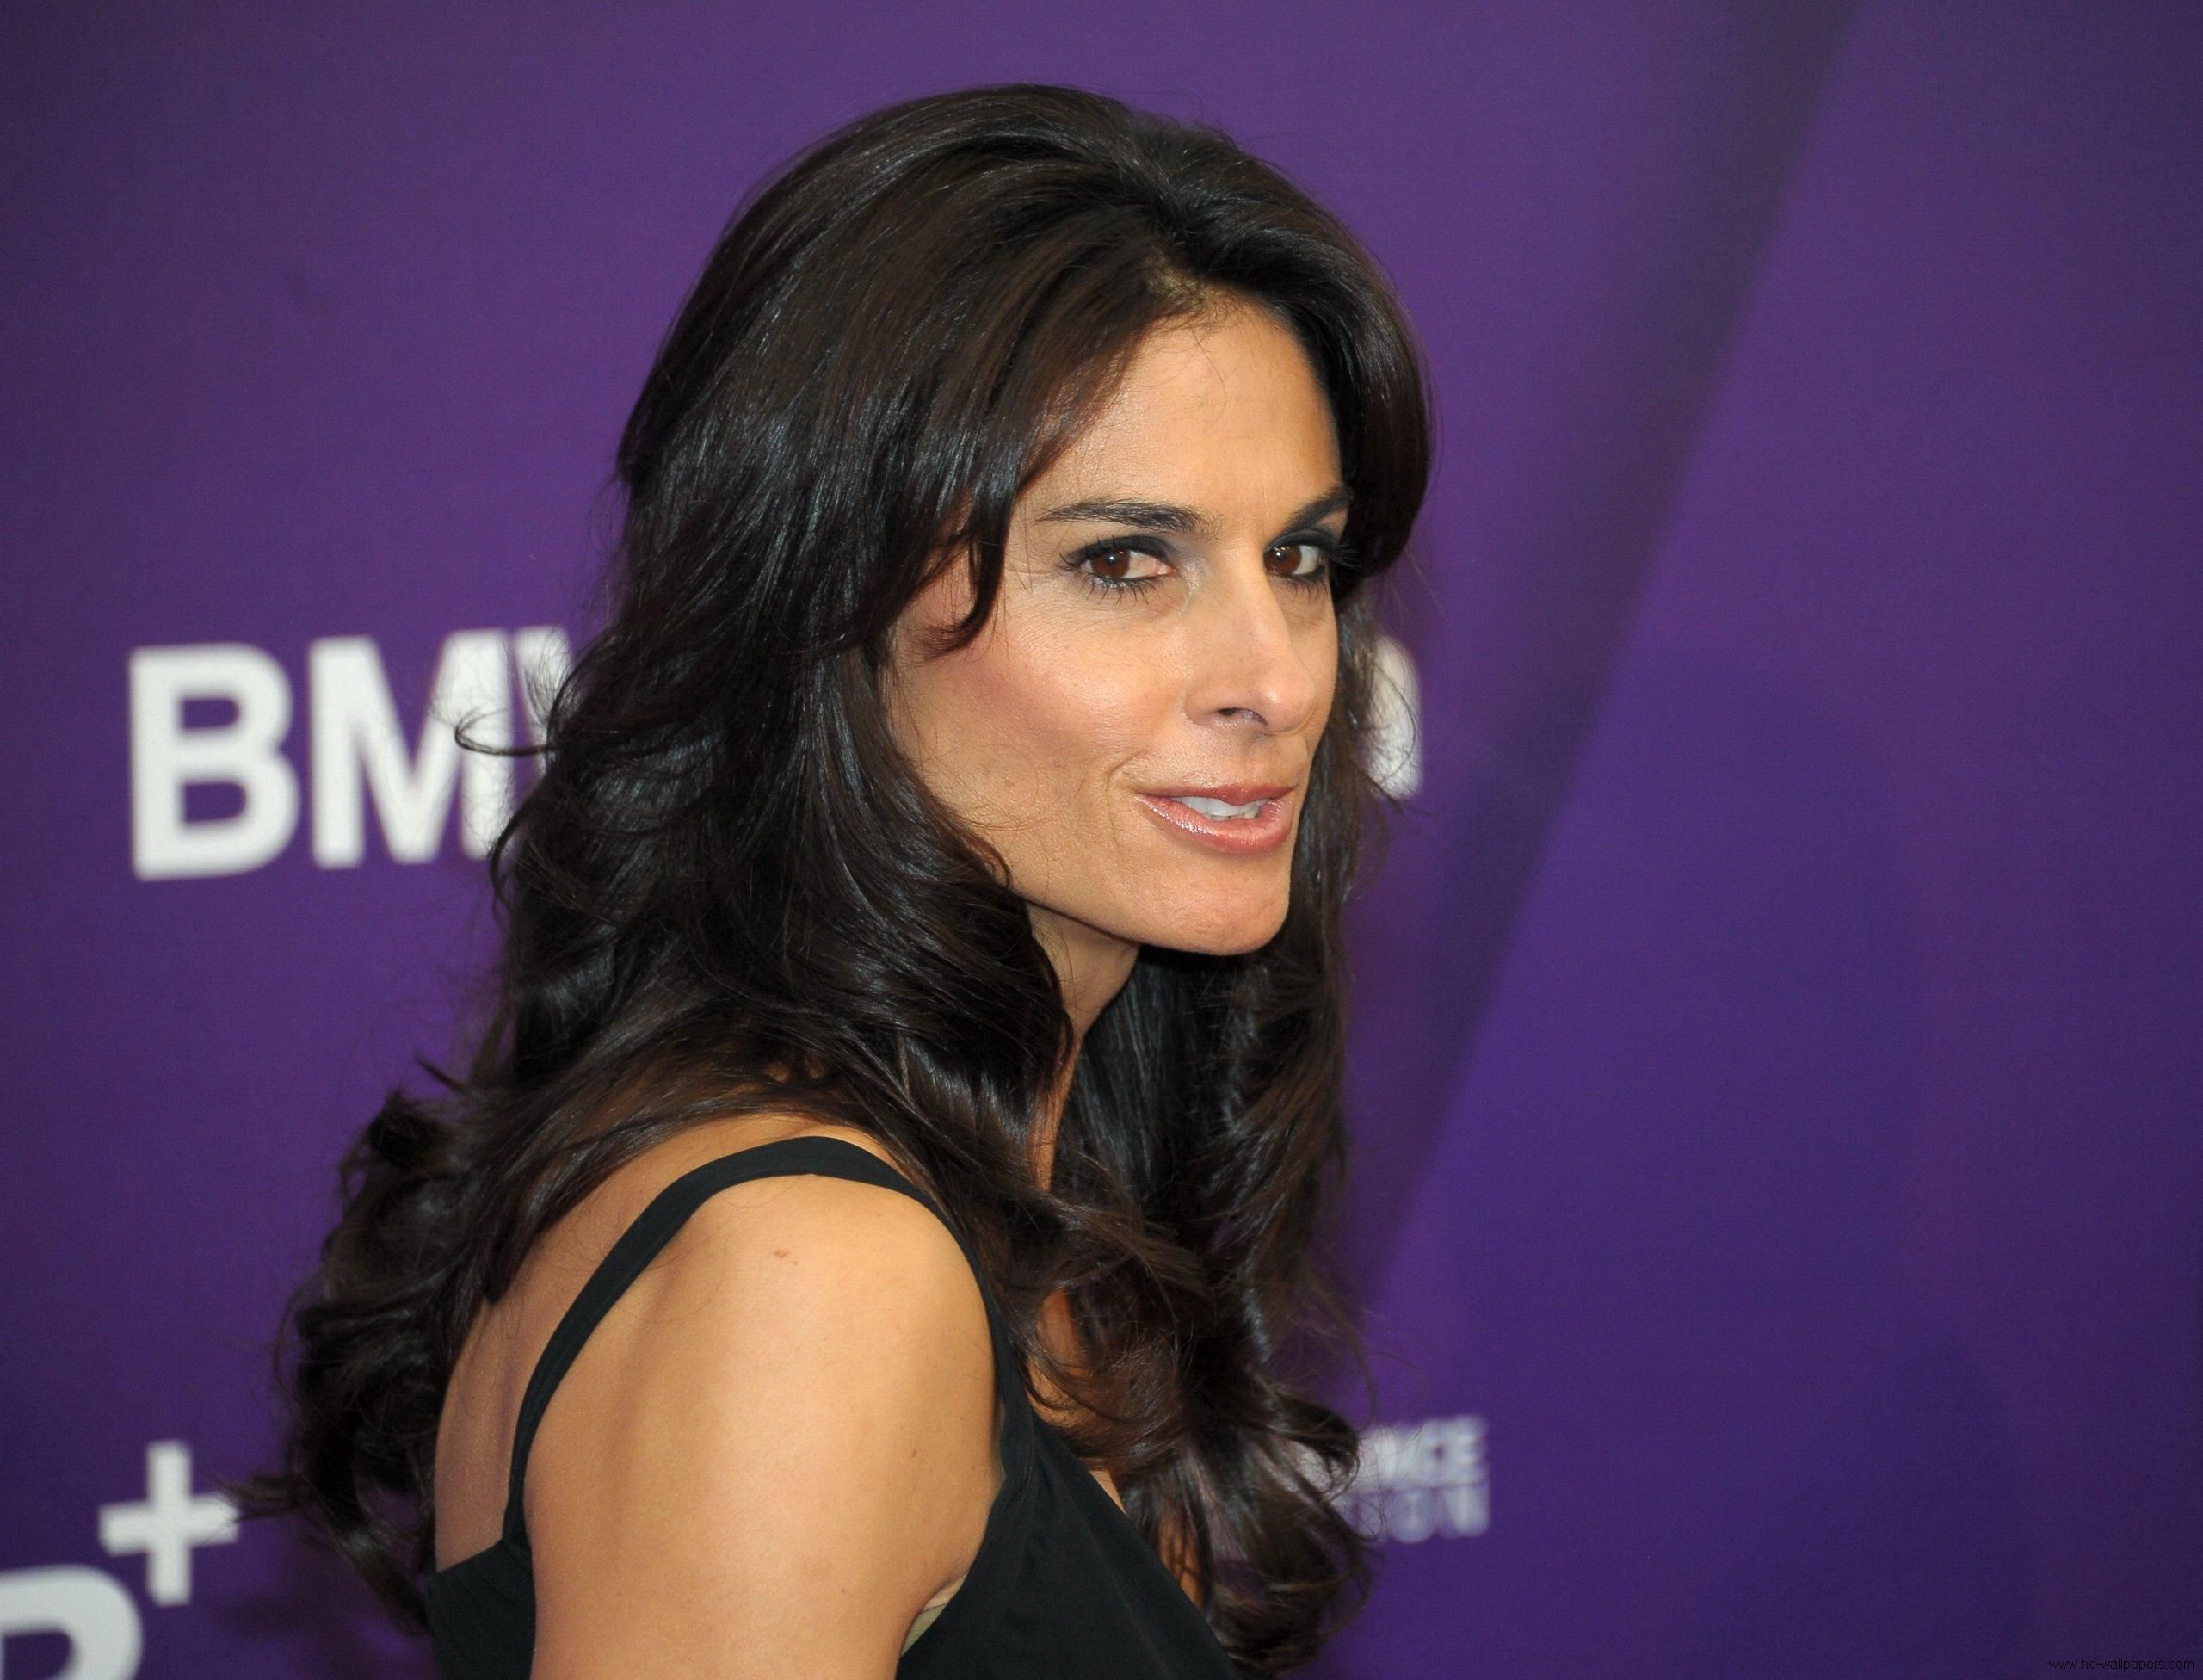 Former Argentinian tennis player Gabriela Sabatini is photographed